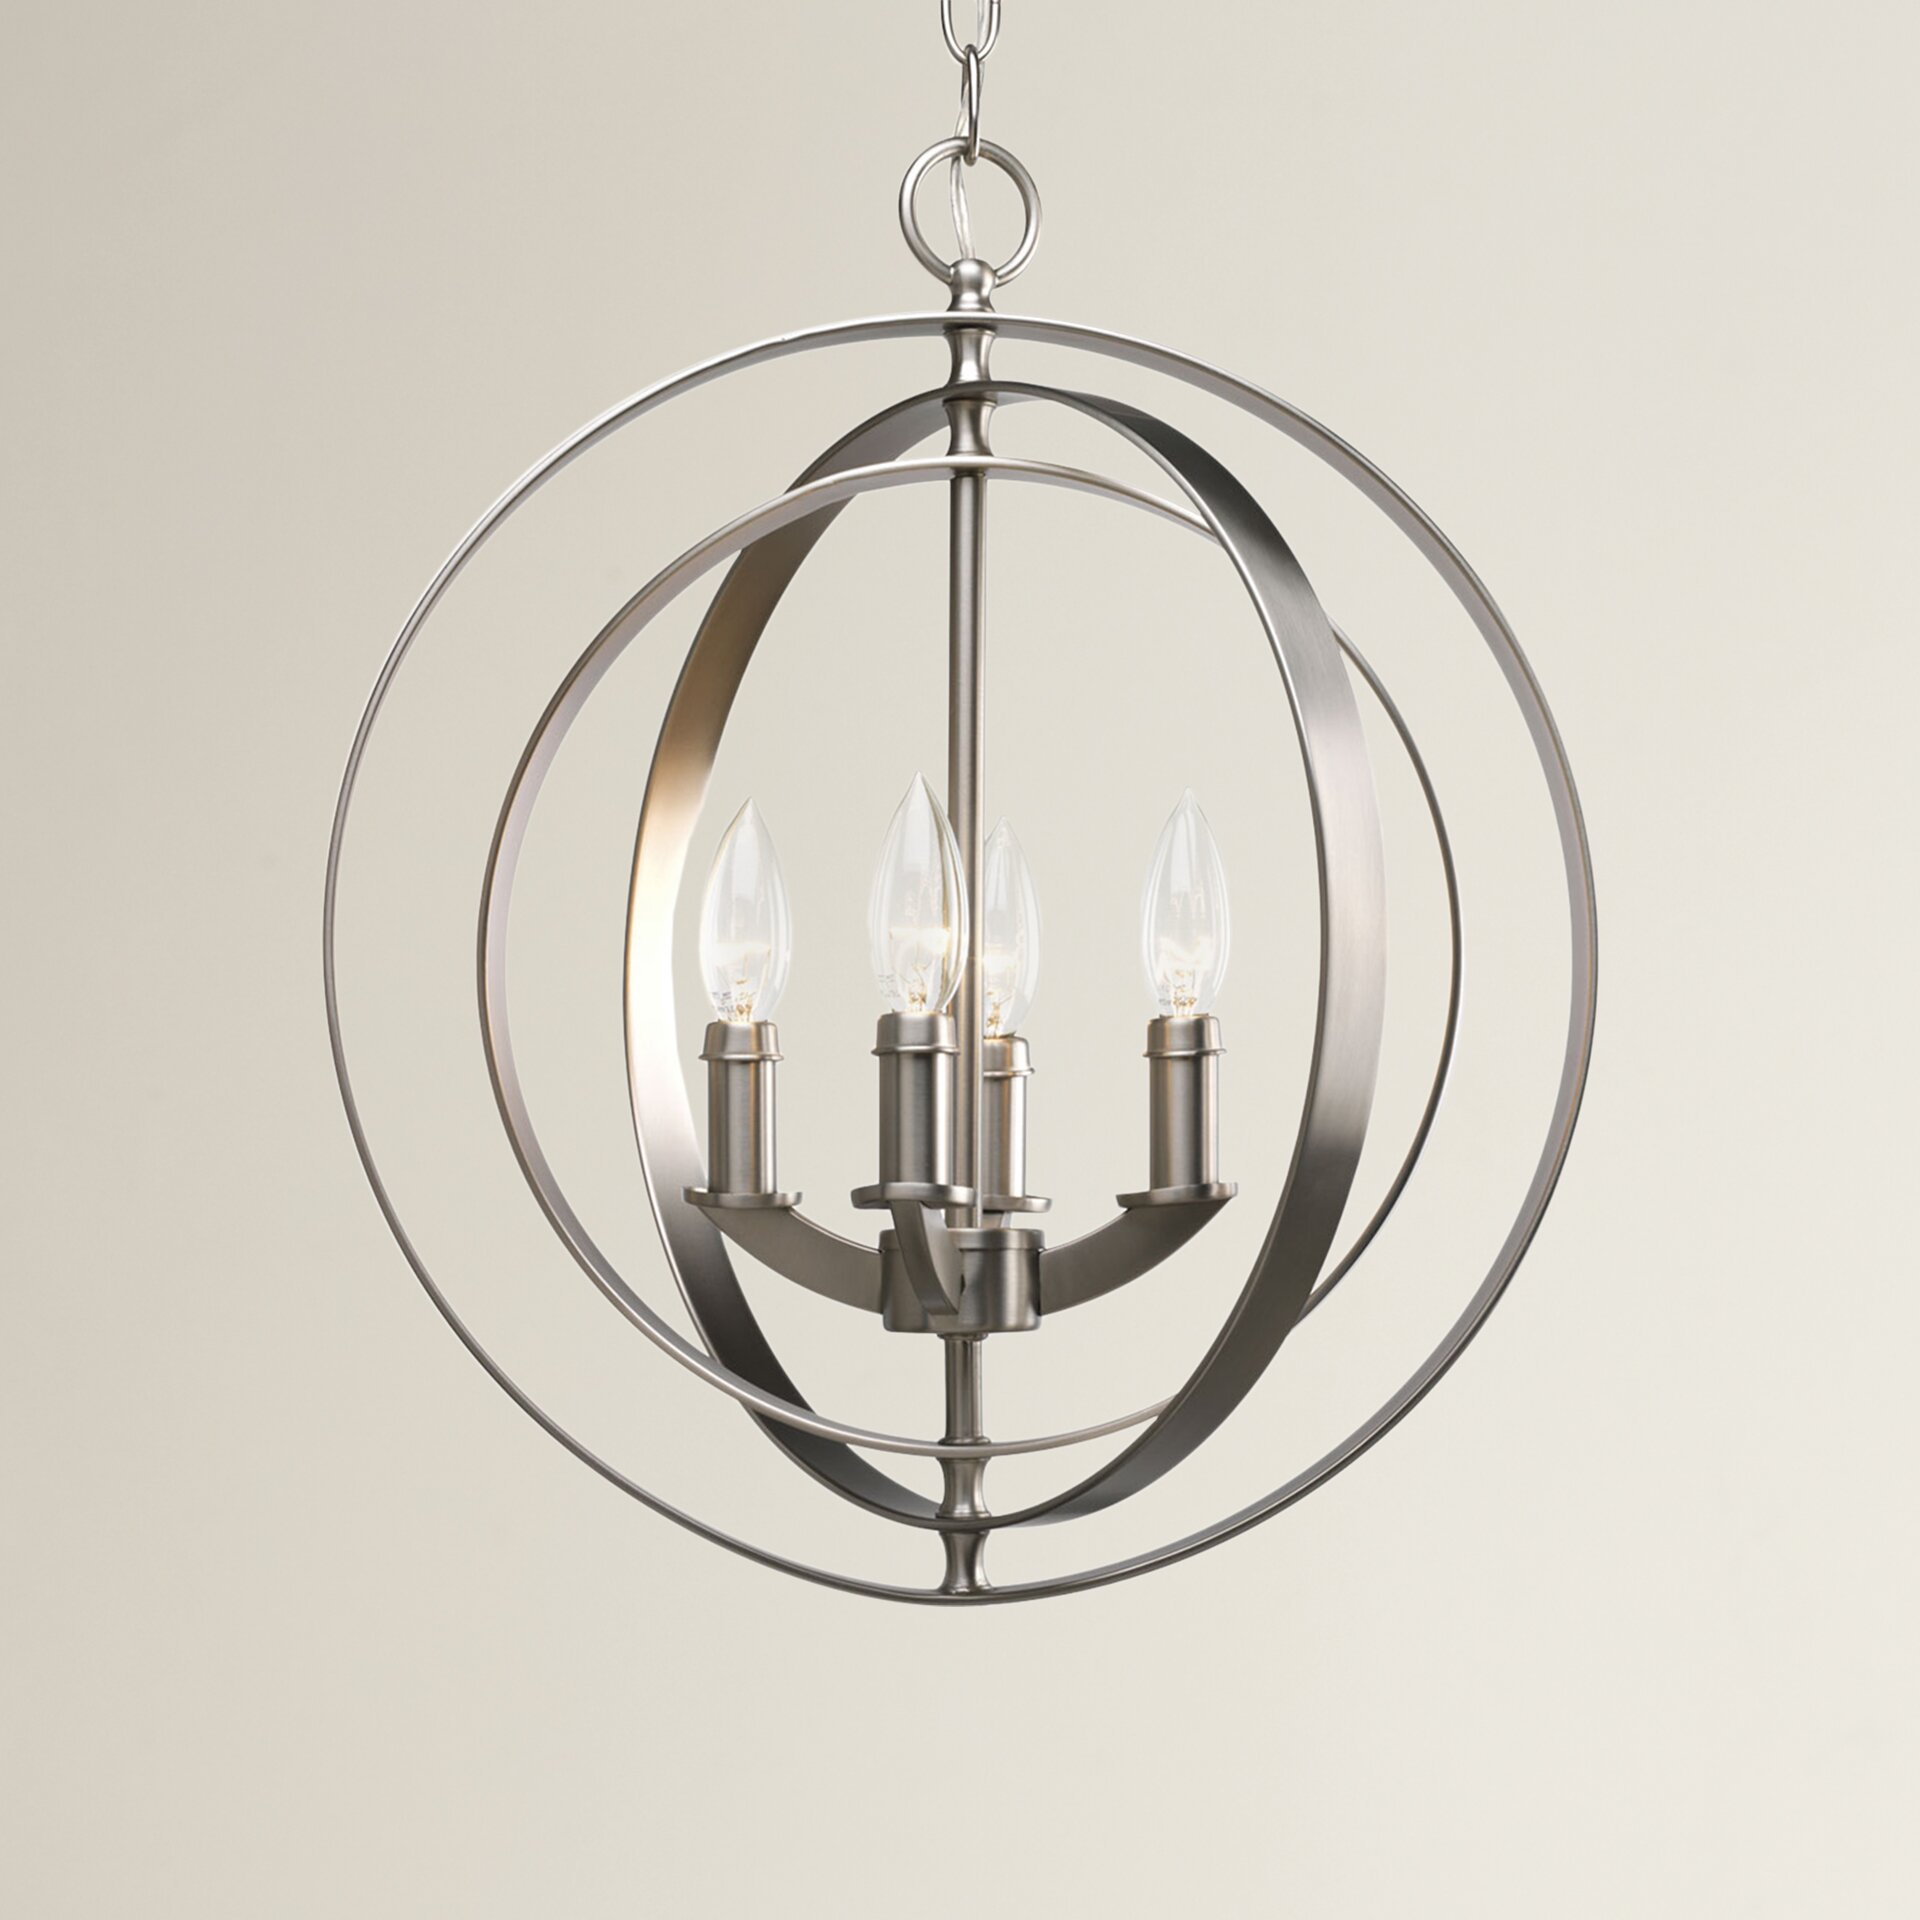 Brayden studio morganti 4 light candle chandelier reviews wayfair - Can light chandelier ...